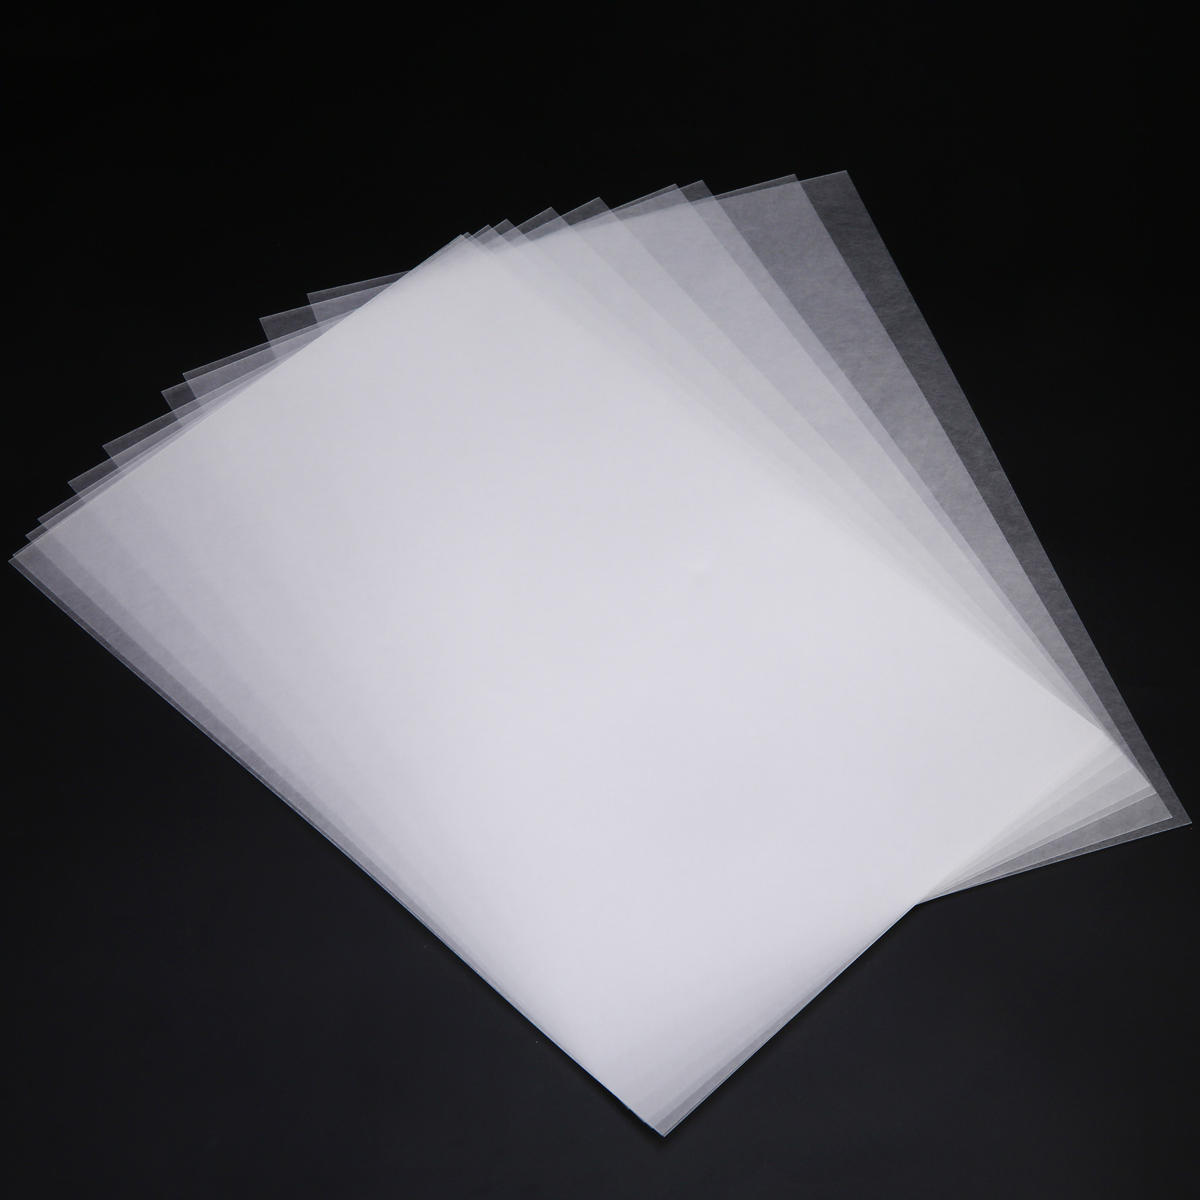 5x Heat Shrink Paper Film Sheets for DIY Jewelry Making Craft Rough Polish